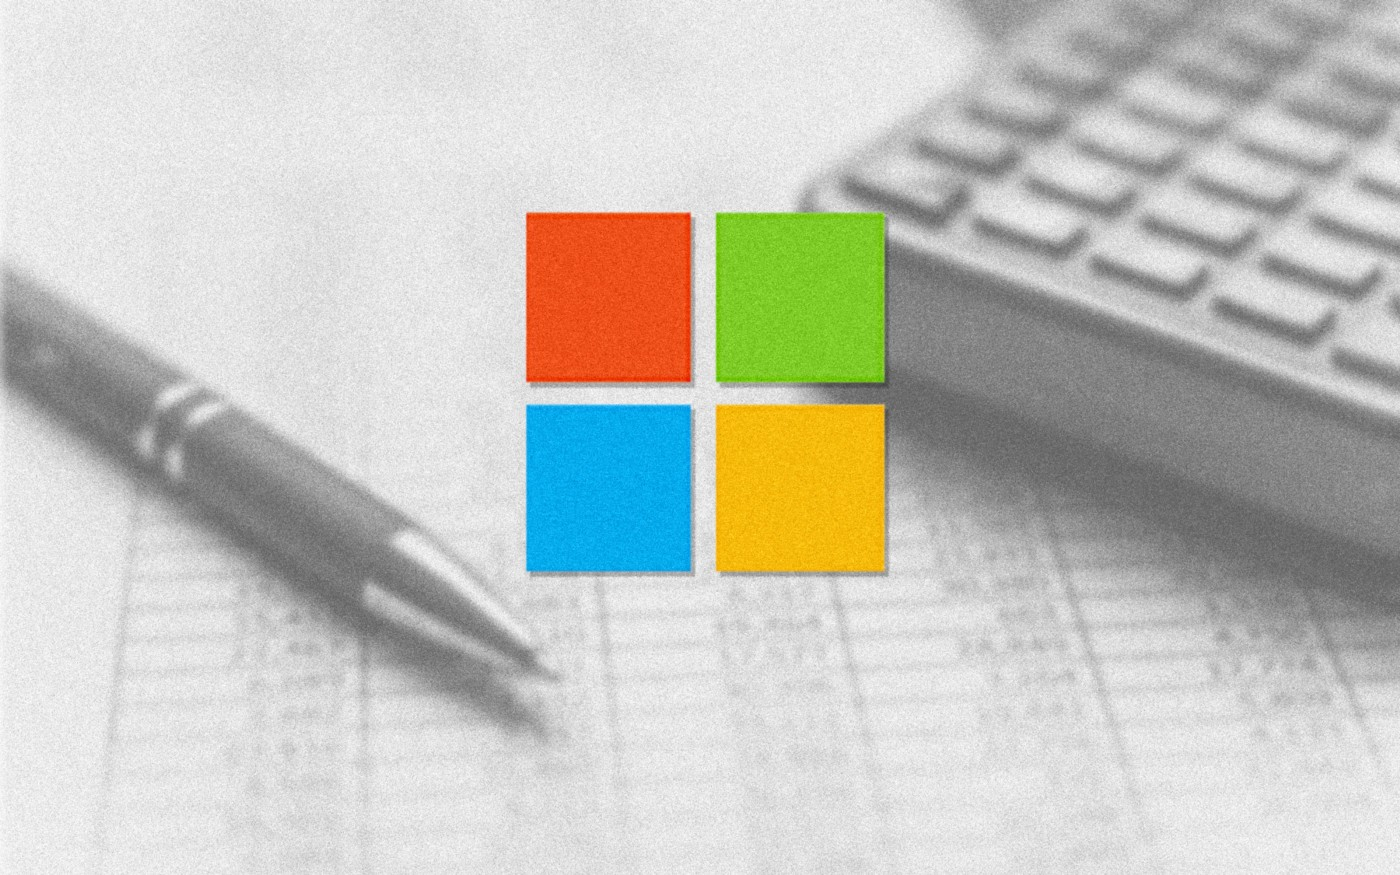 Microsoft logo over an image of a calculator, pen, and printed table chart.